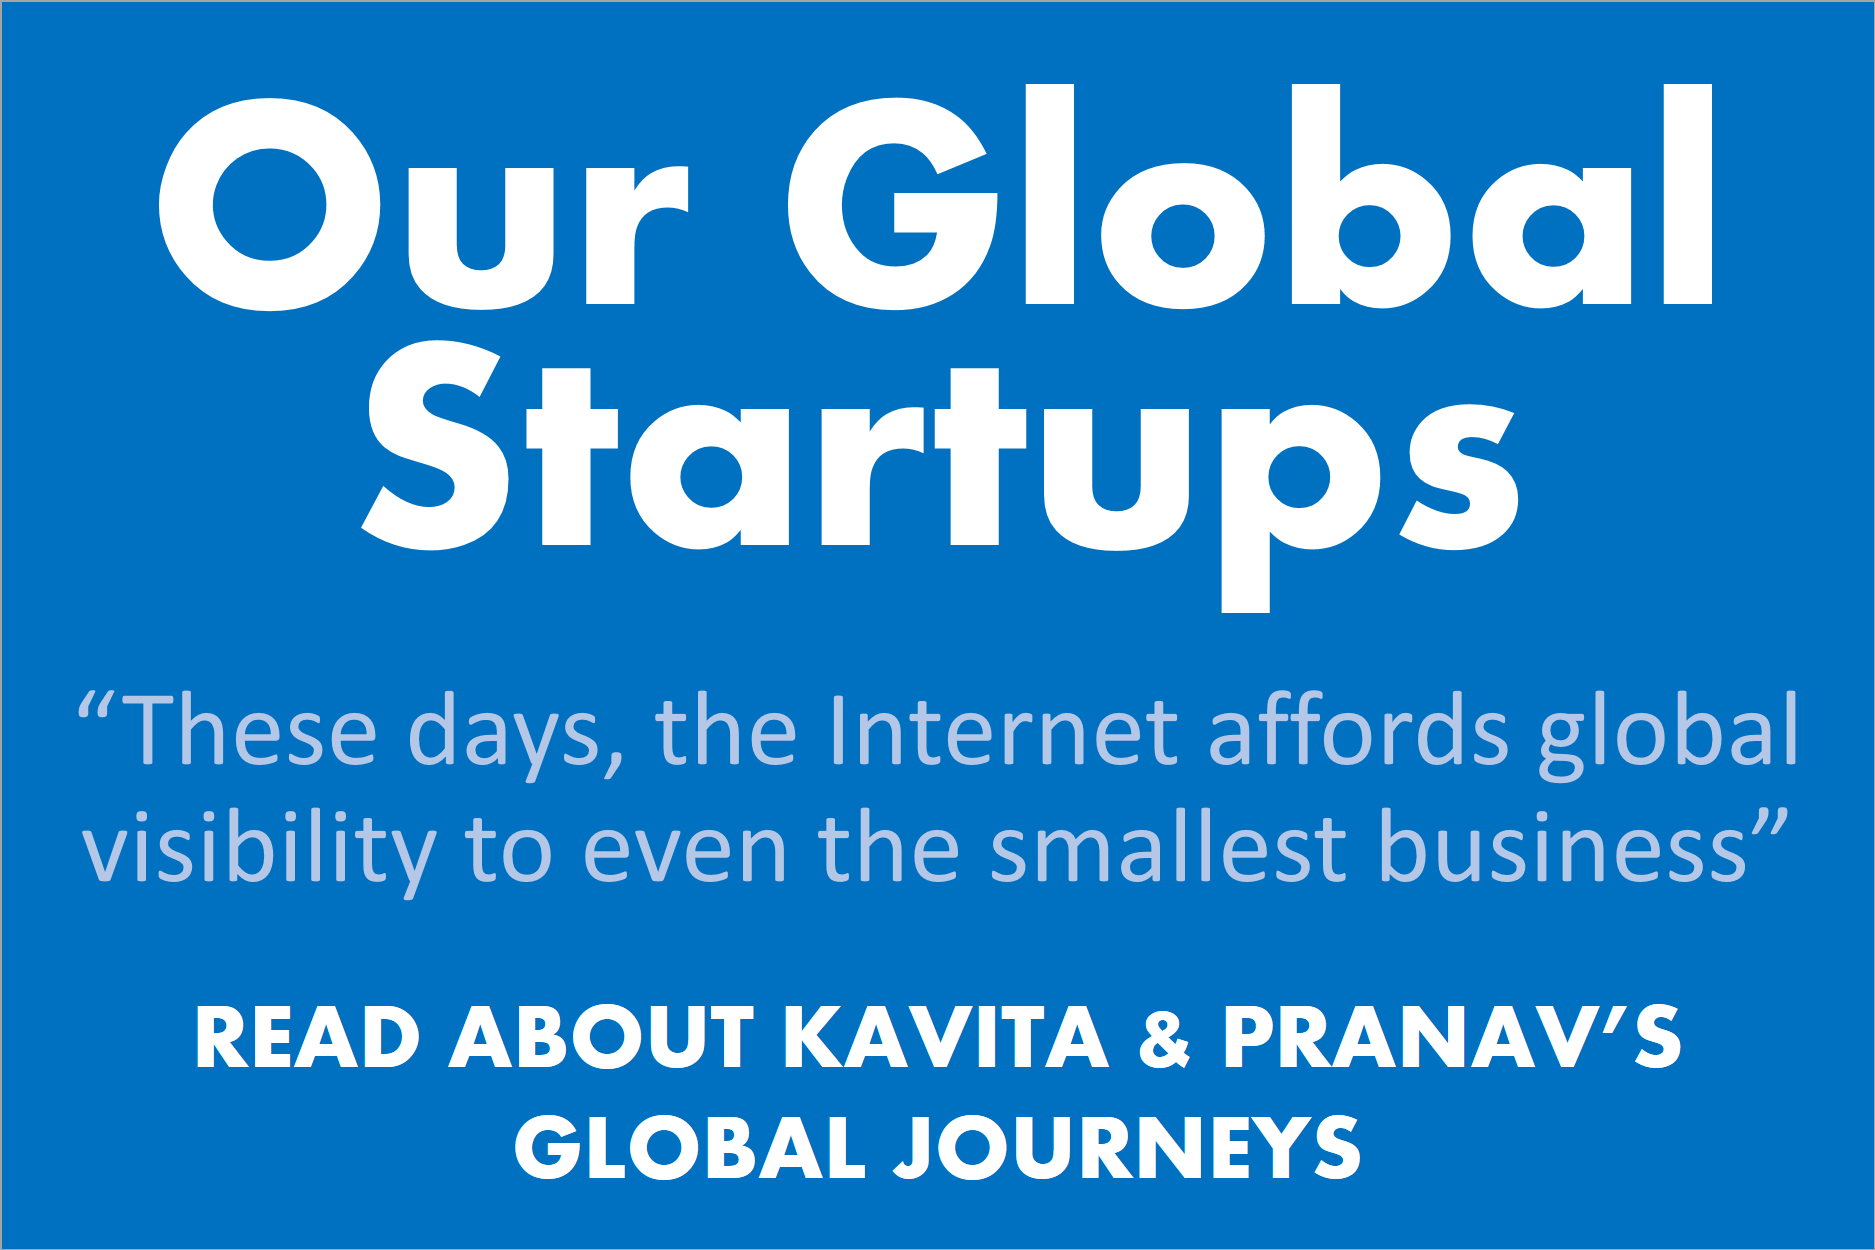 Our Global Startups